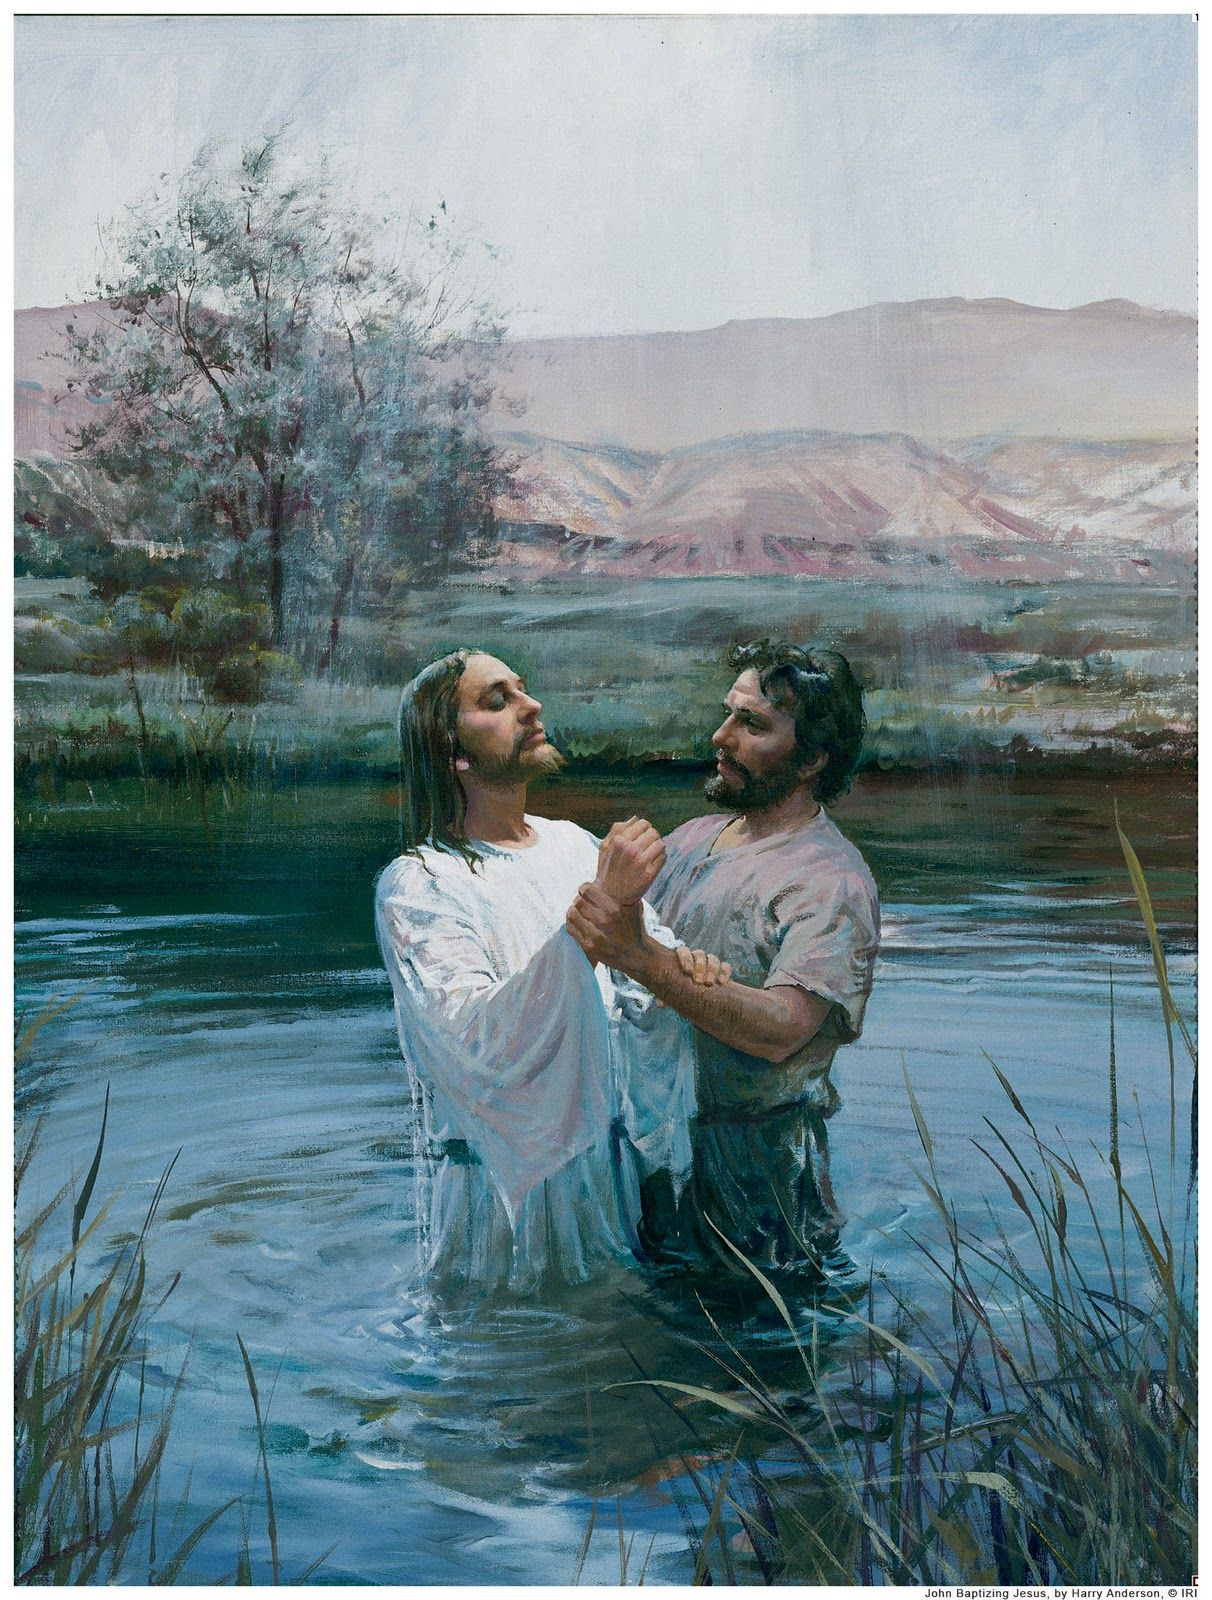 Follow the example of the savior baptism by immersion